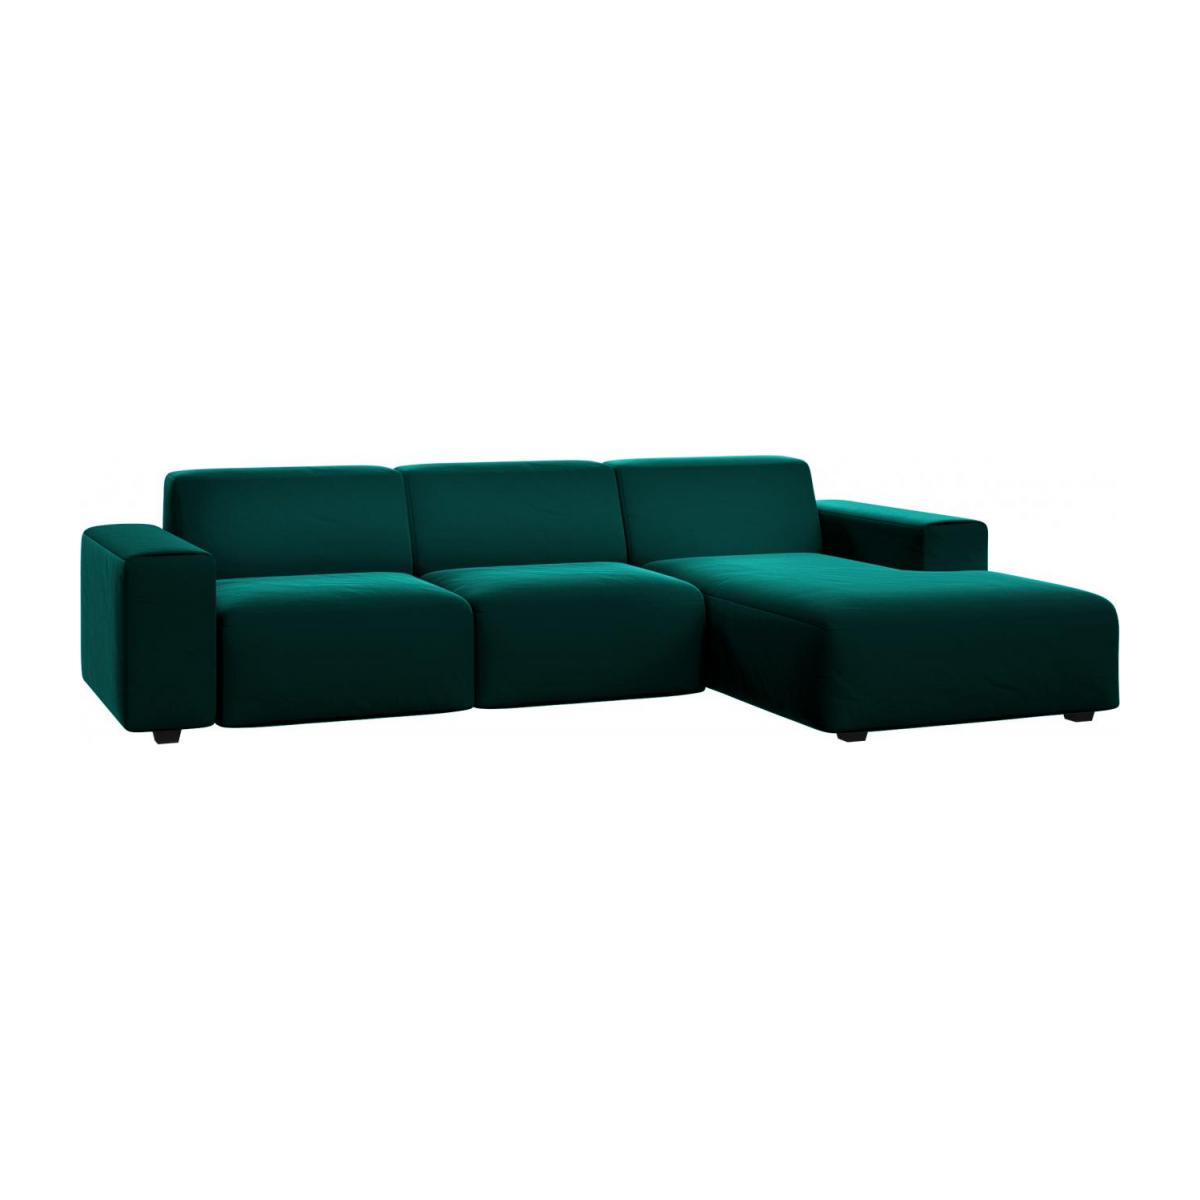 3 seater sofa with chaise longue on the right in Super Velvet fabric, petrol blue n°1